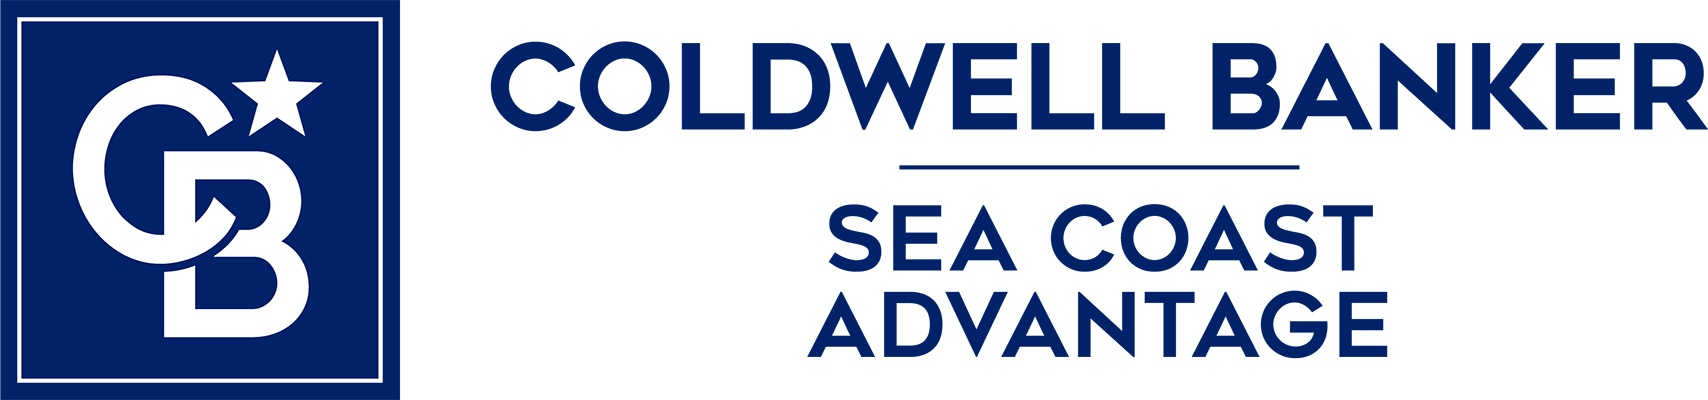 Cindy Connaway - Coldwell Banker Sea Coast Advantage Realty